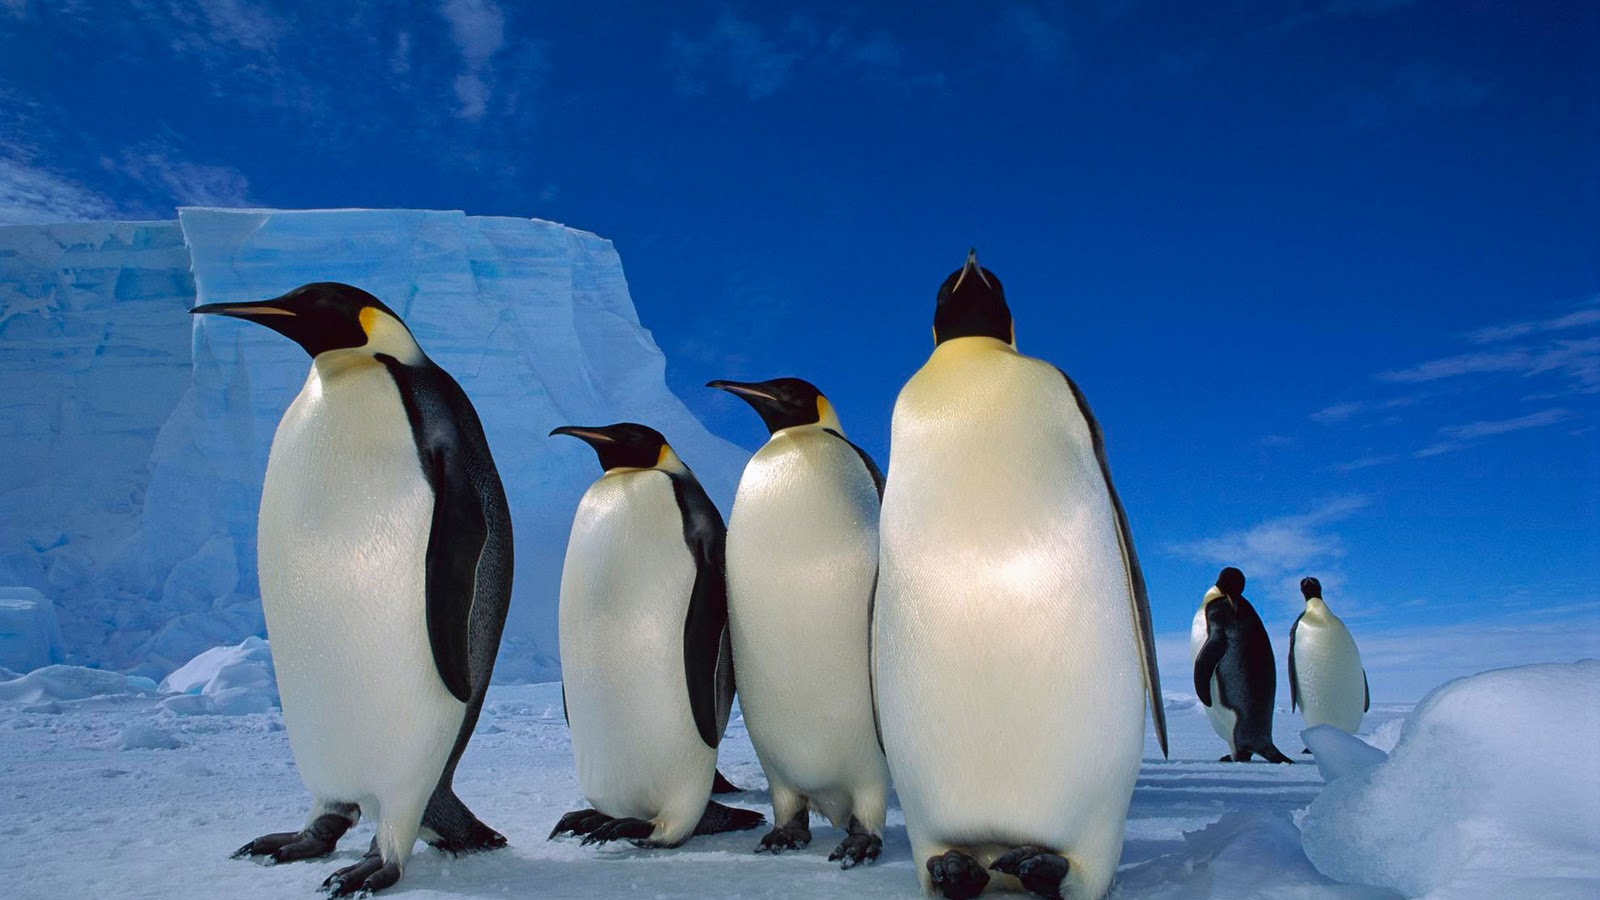 Penguin desktop wallpaper hd - photo#5